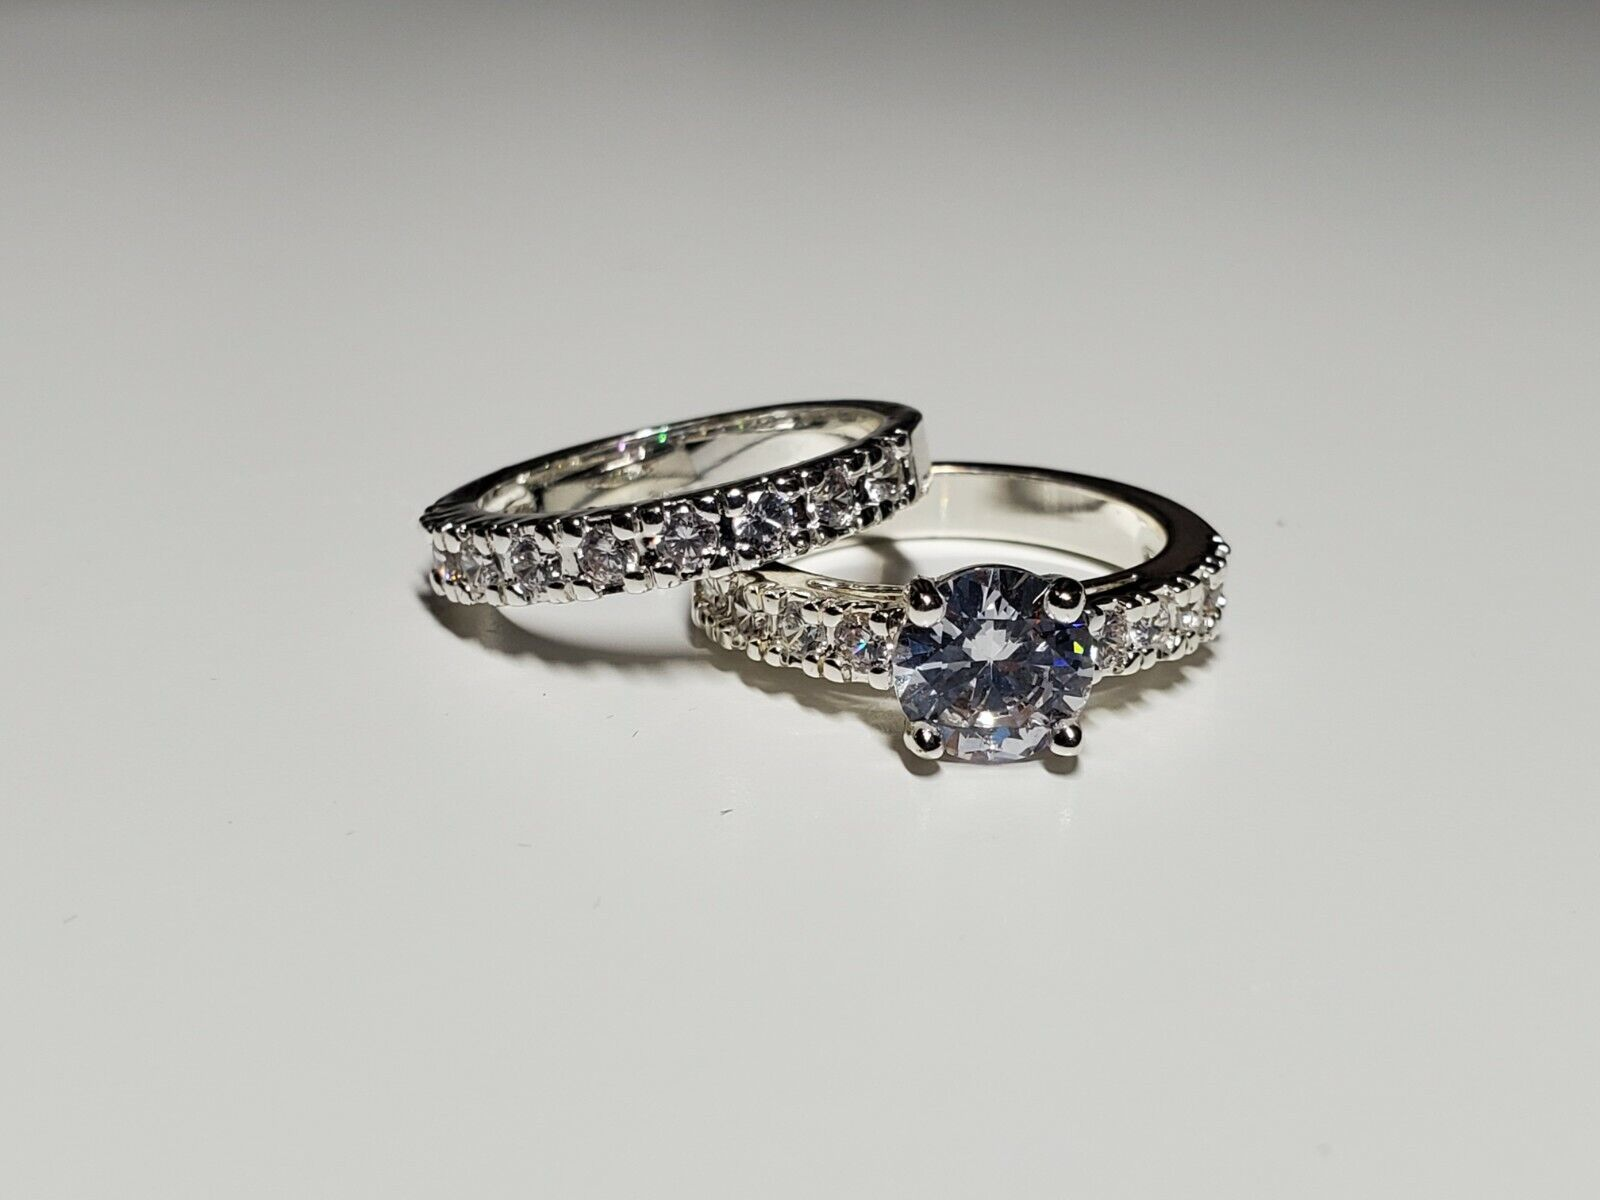 ring set size 5 silver tone new